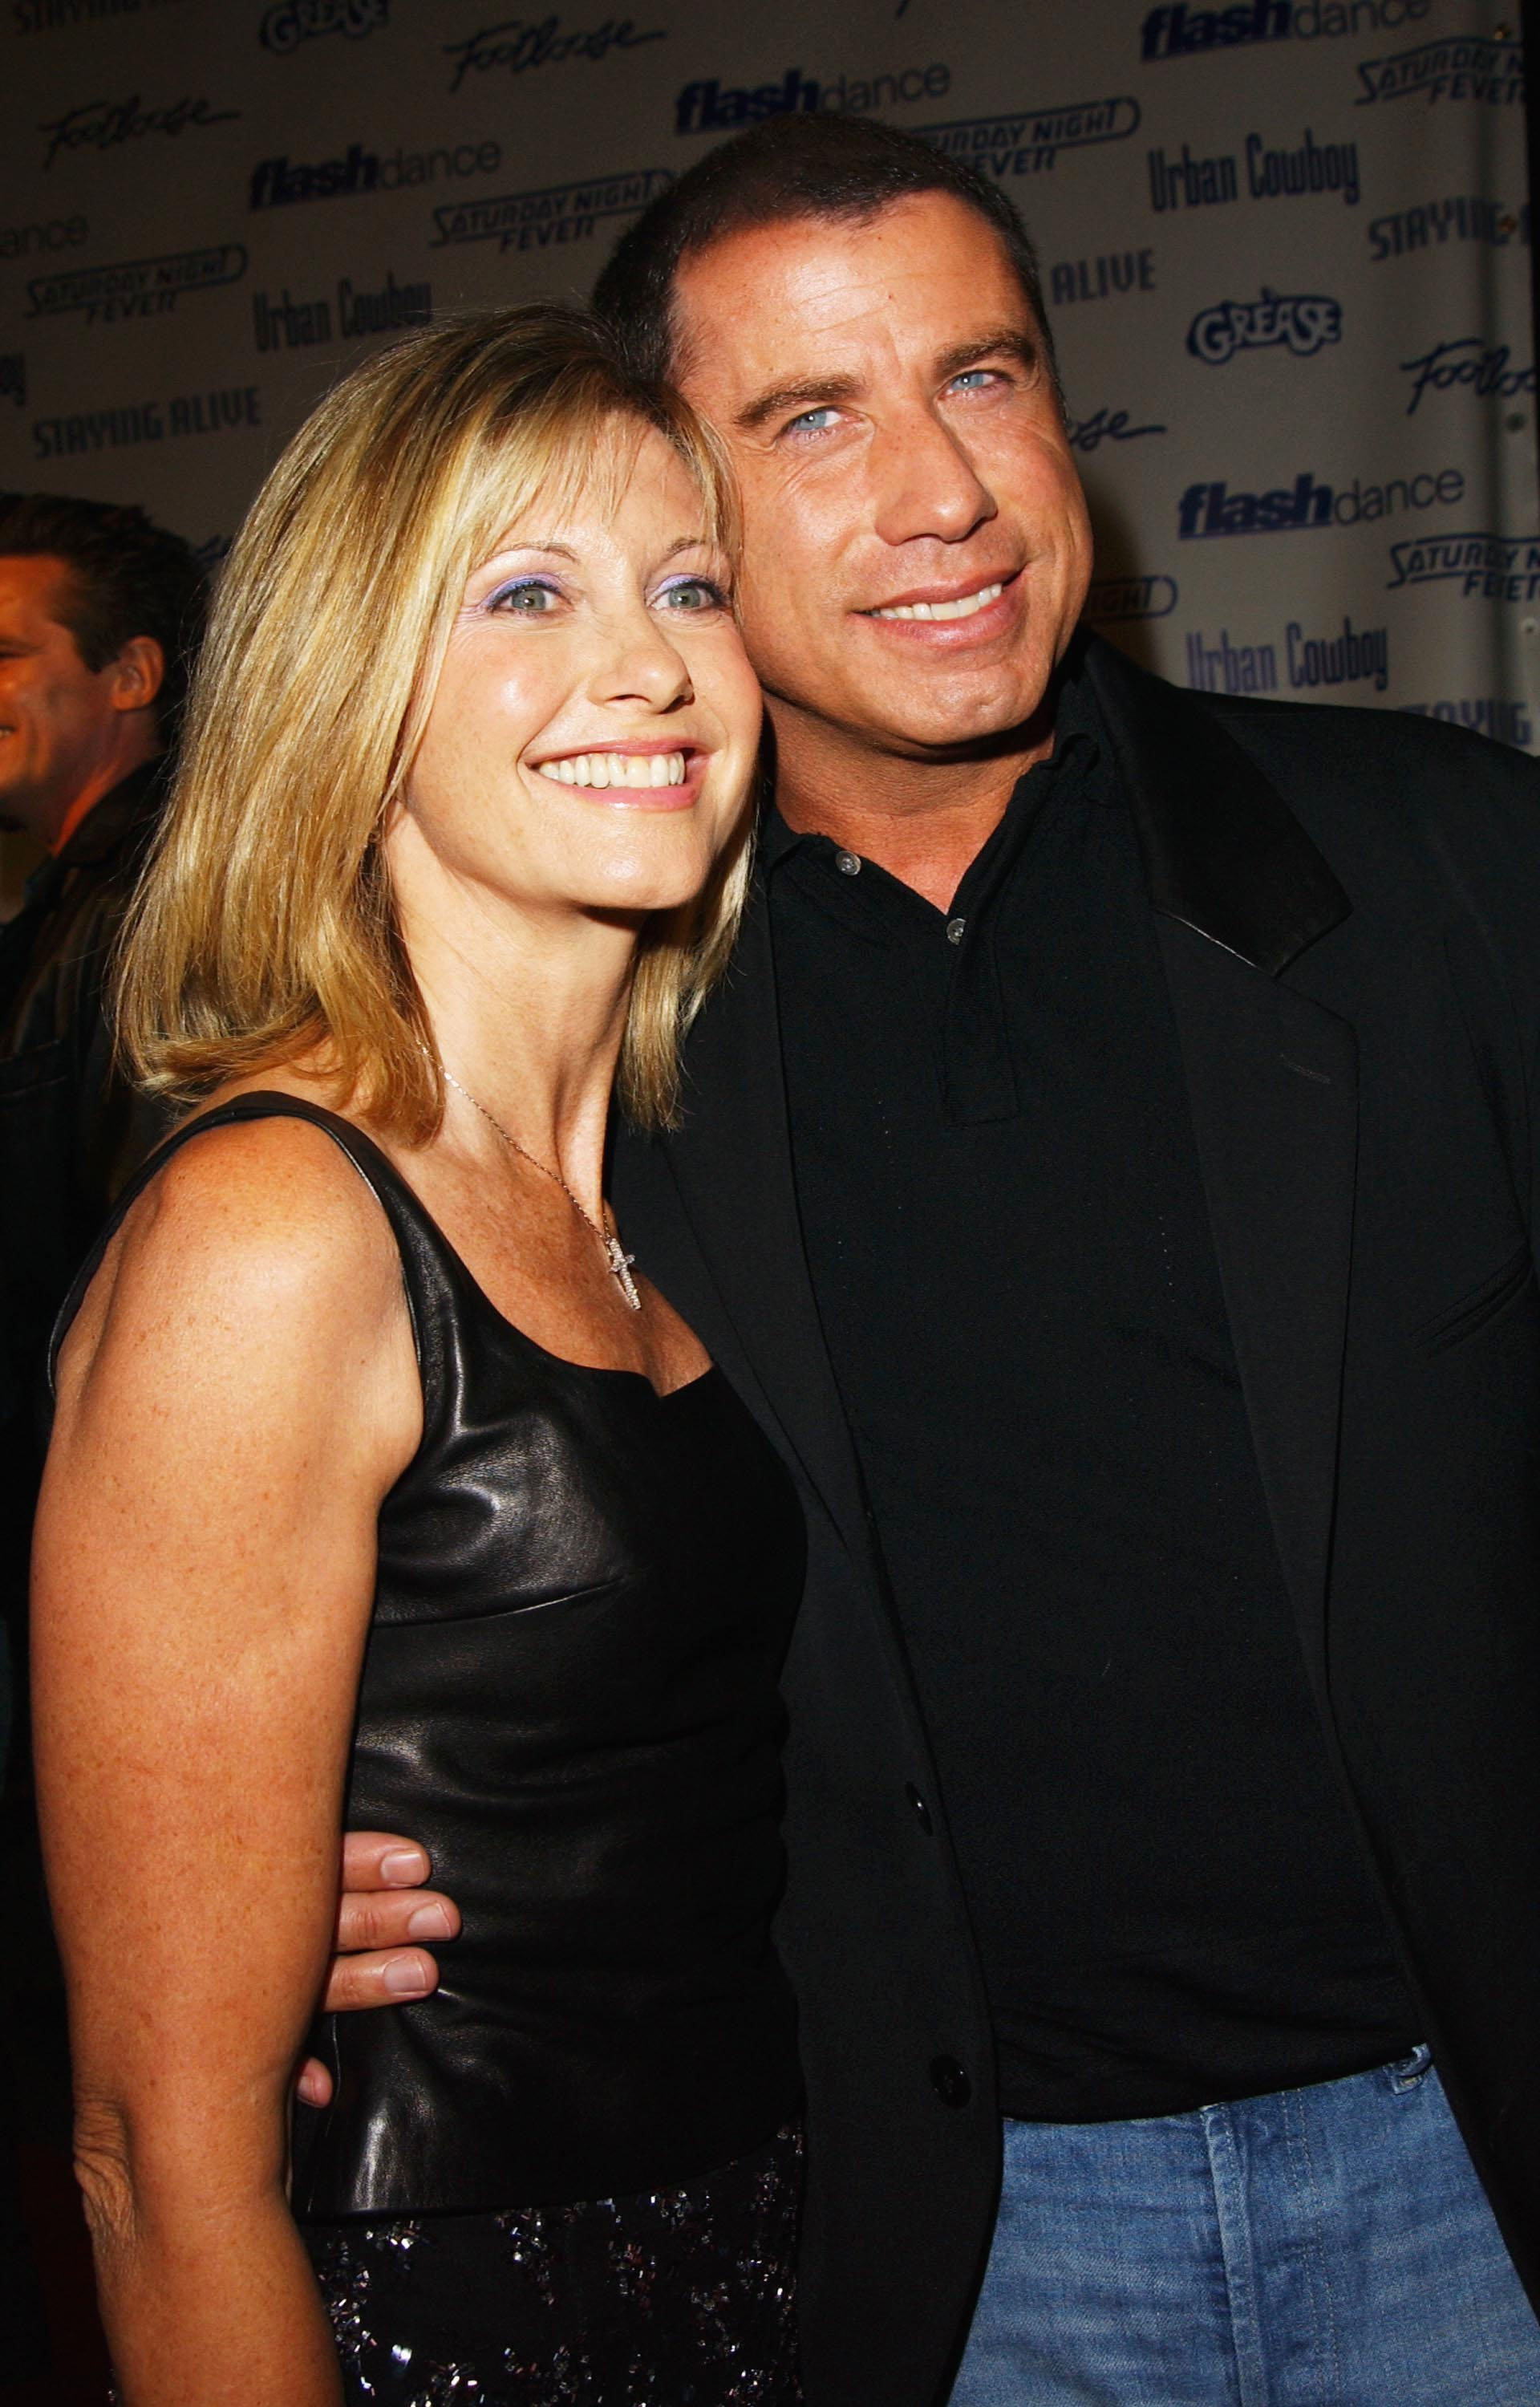 Olivia Newton-John and John Travolta on September 22, 2002, at Paramount Studios in Los Angeles, California. | Photo: Getty Images.